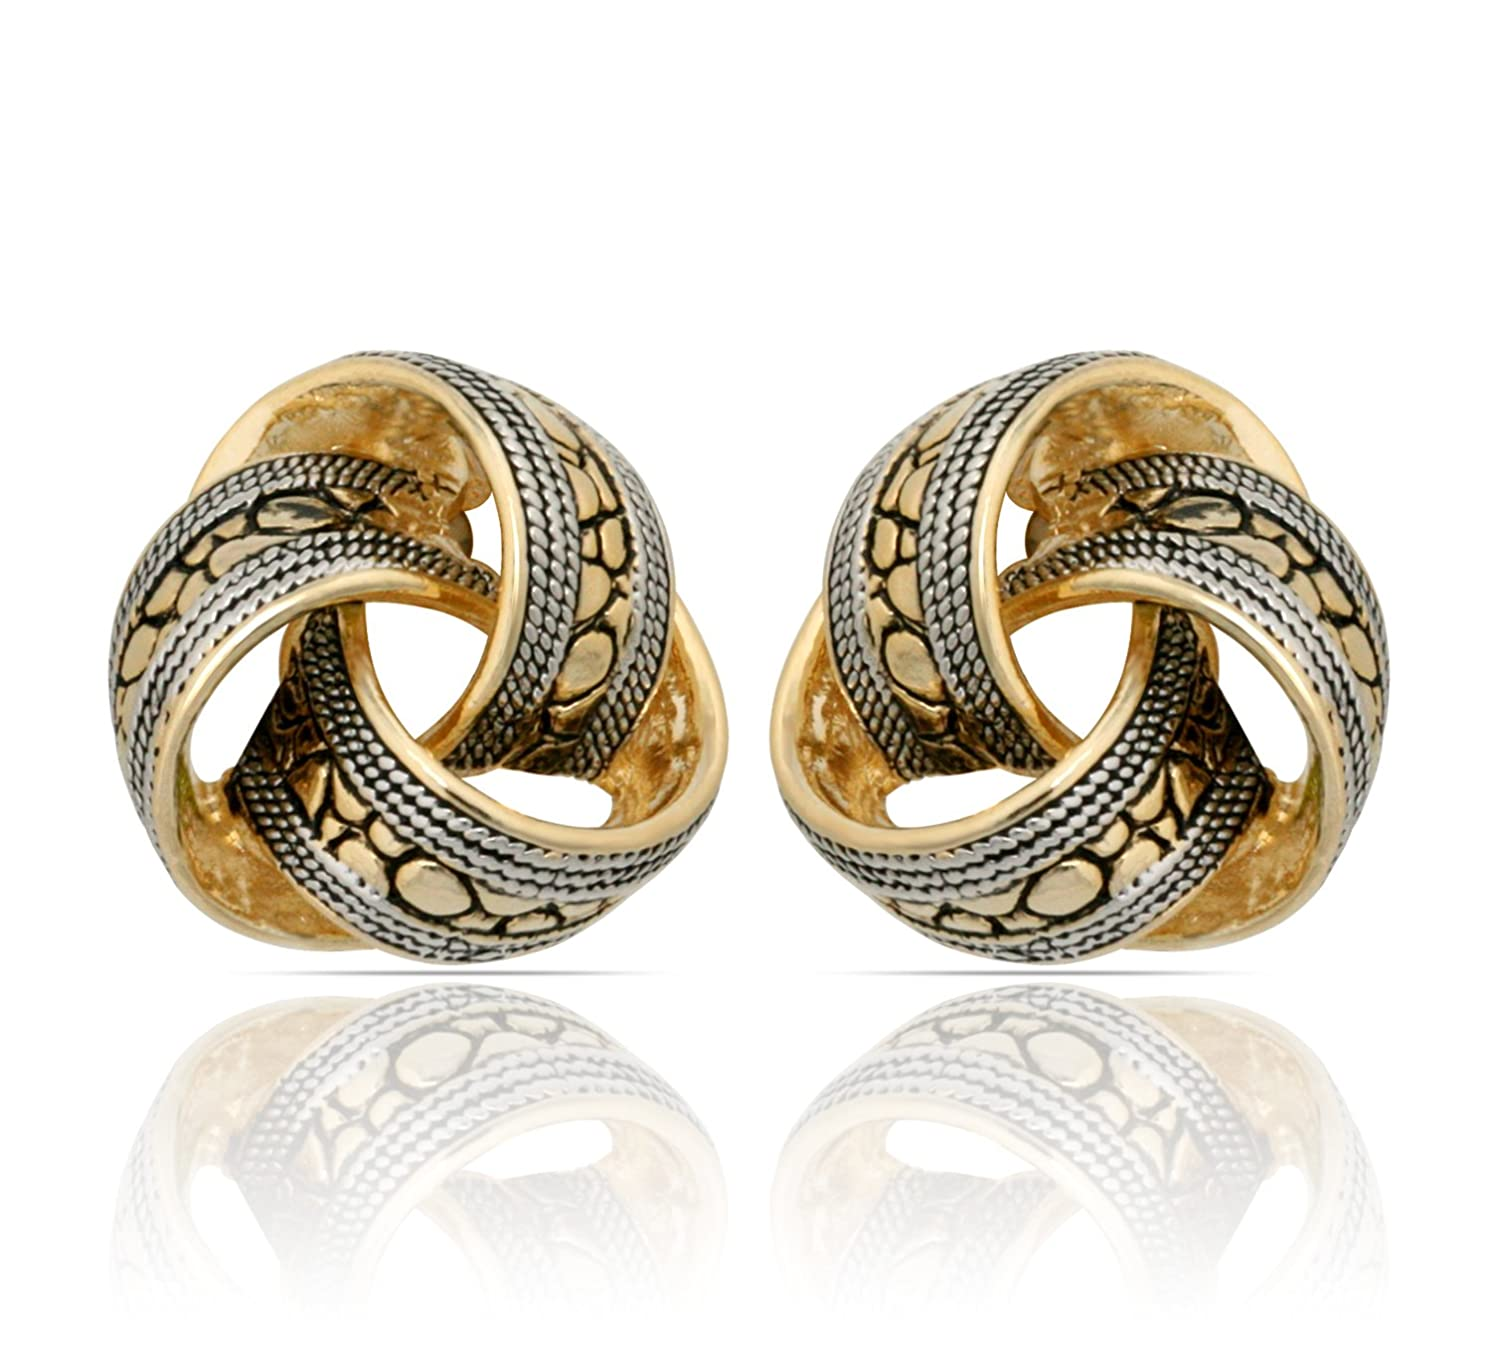 JanKuo Jewelry Two Tone Bali Antique Style Knot Clip On Earrings B0087G738G_US